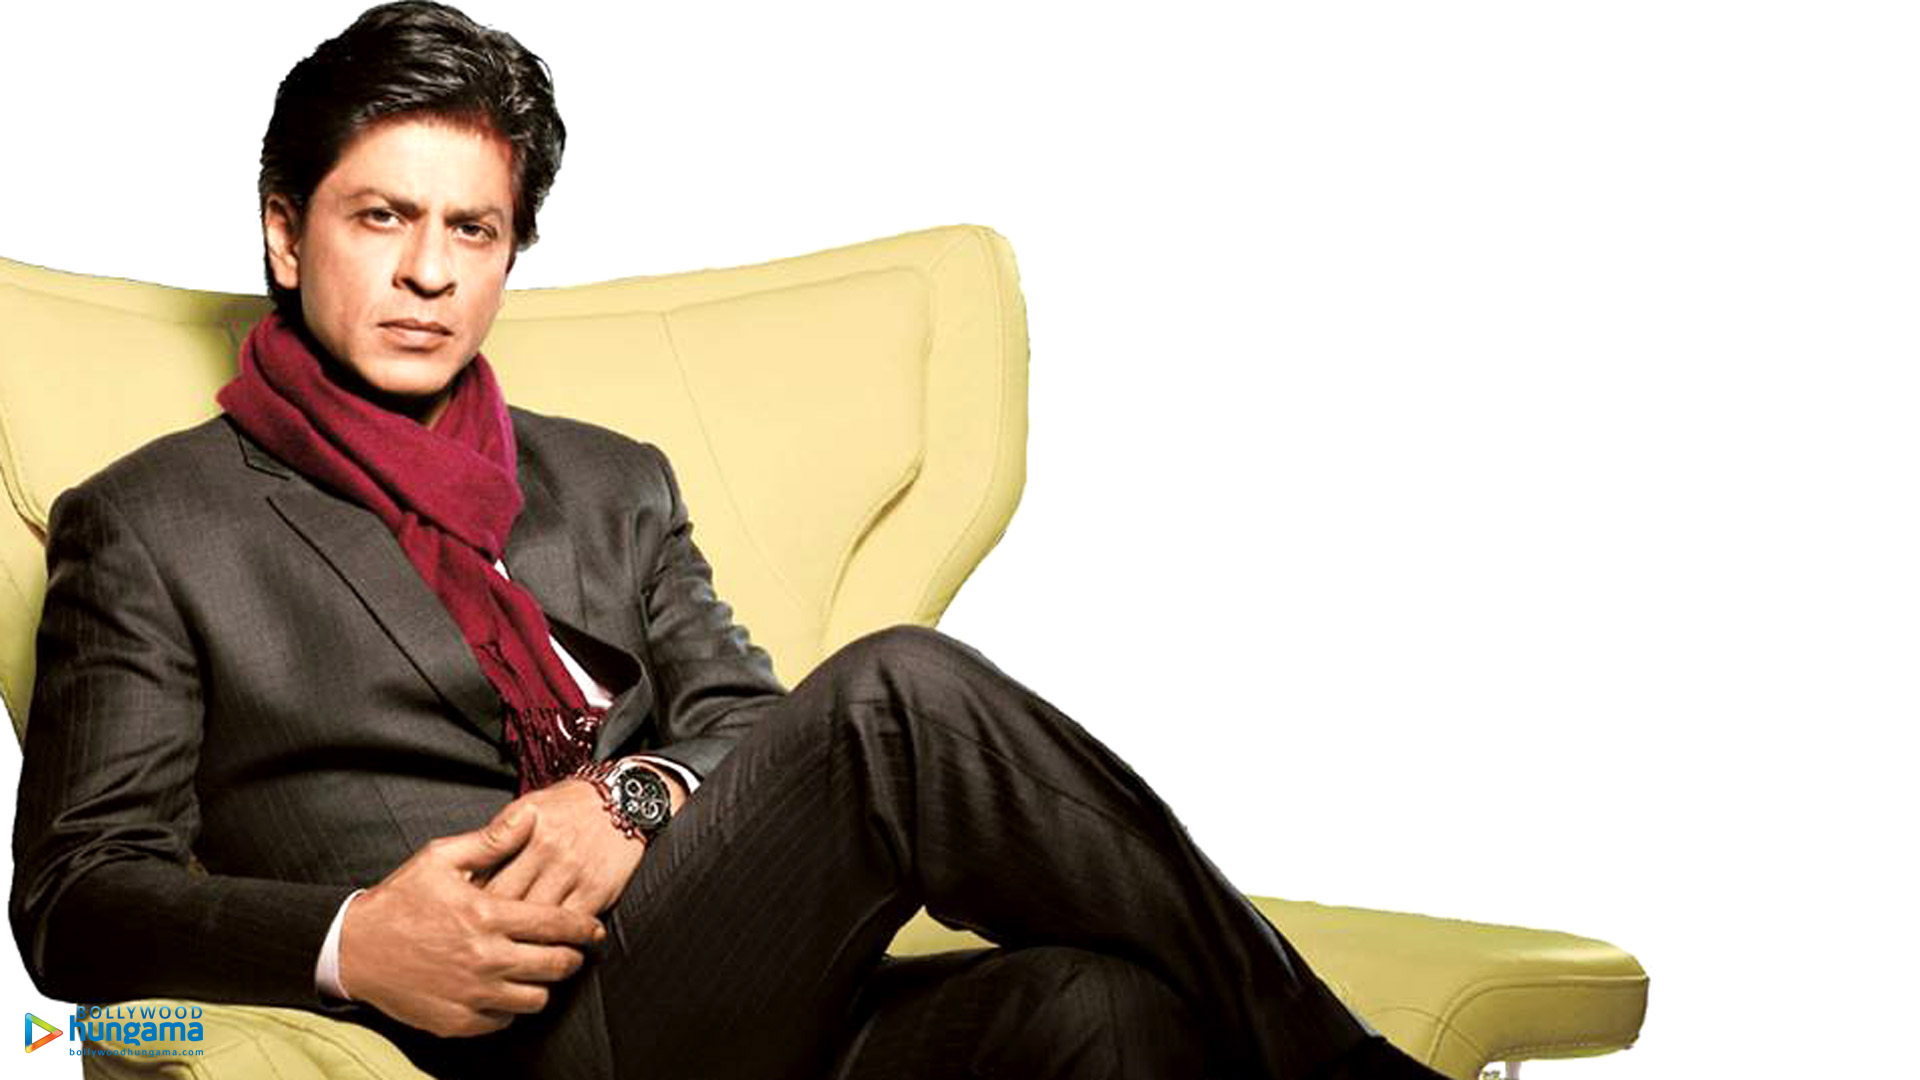 Shahrukh khan wallpapers shahrukh khan 10 bollywood - Shahrukh khan cool wallpaper ...